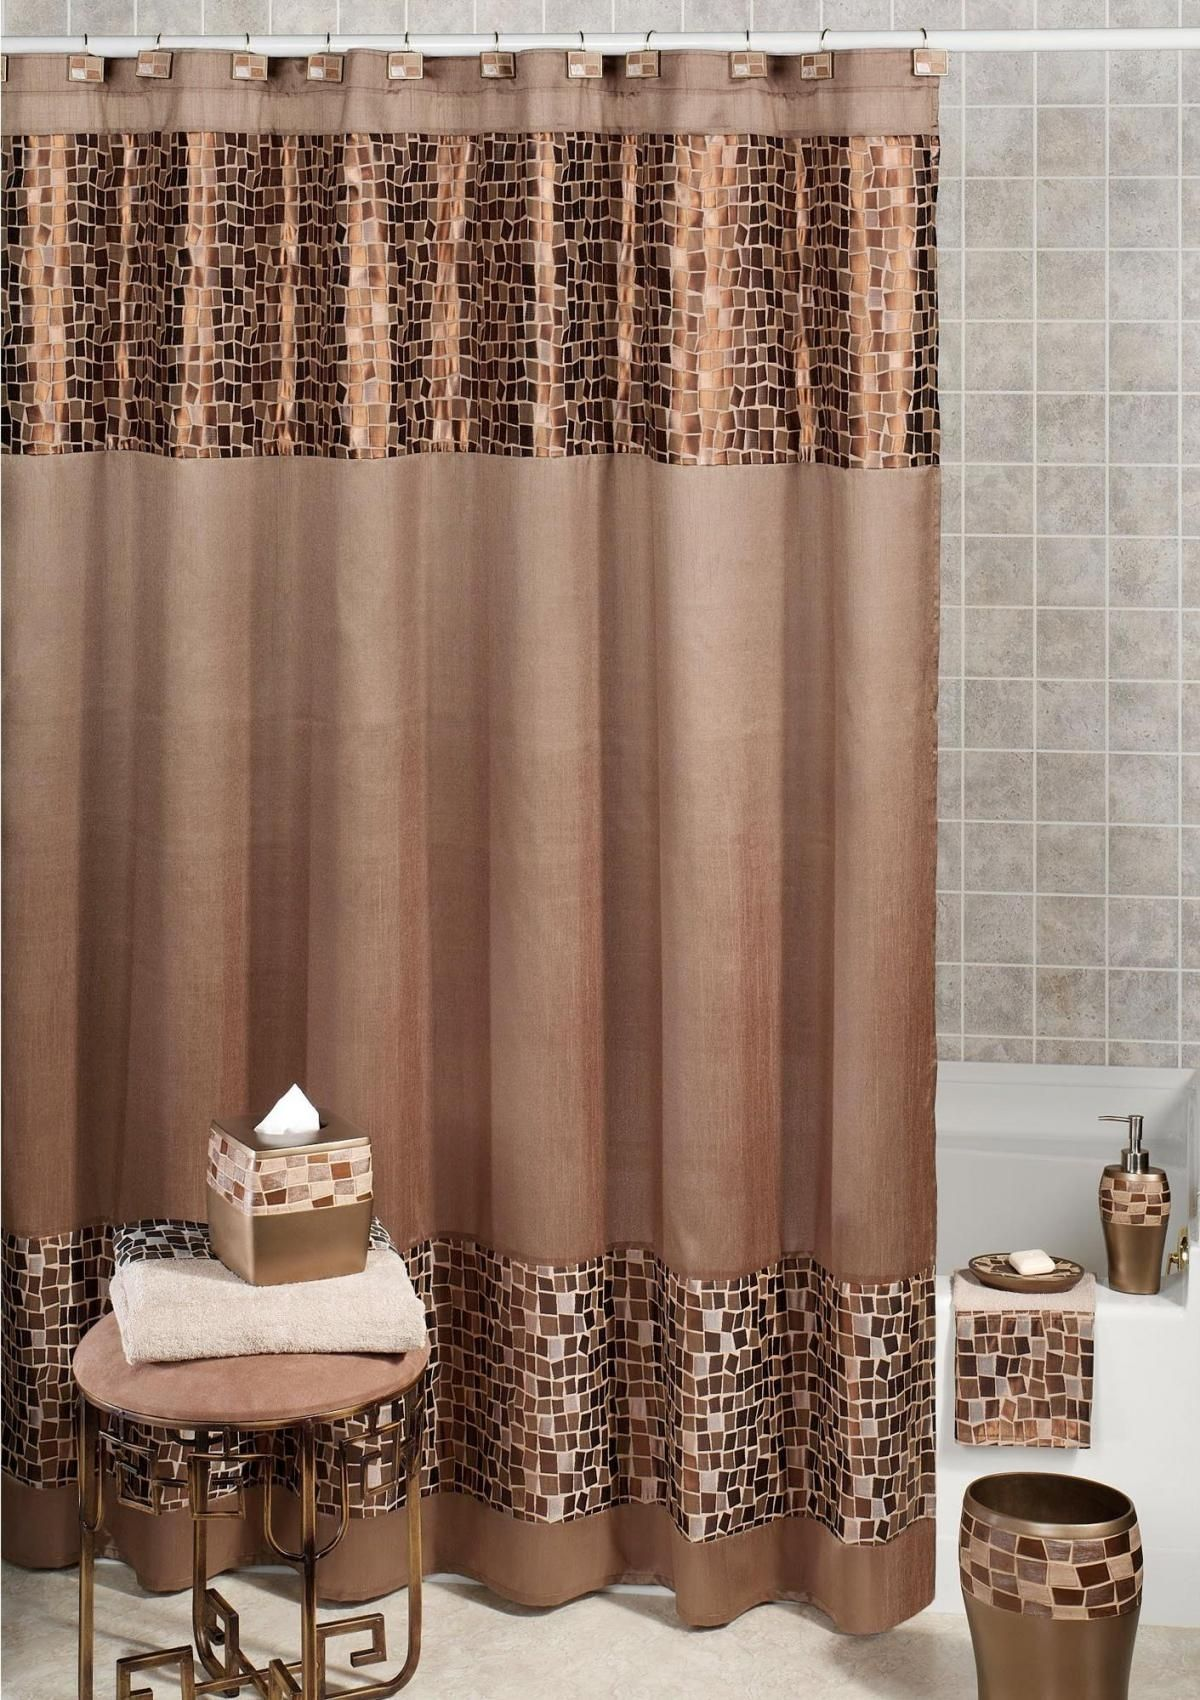 Copper Colored Shower Curtain Elegant Shower Curtains Brown